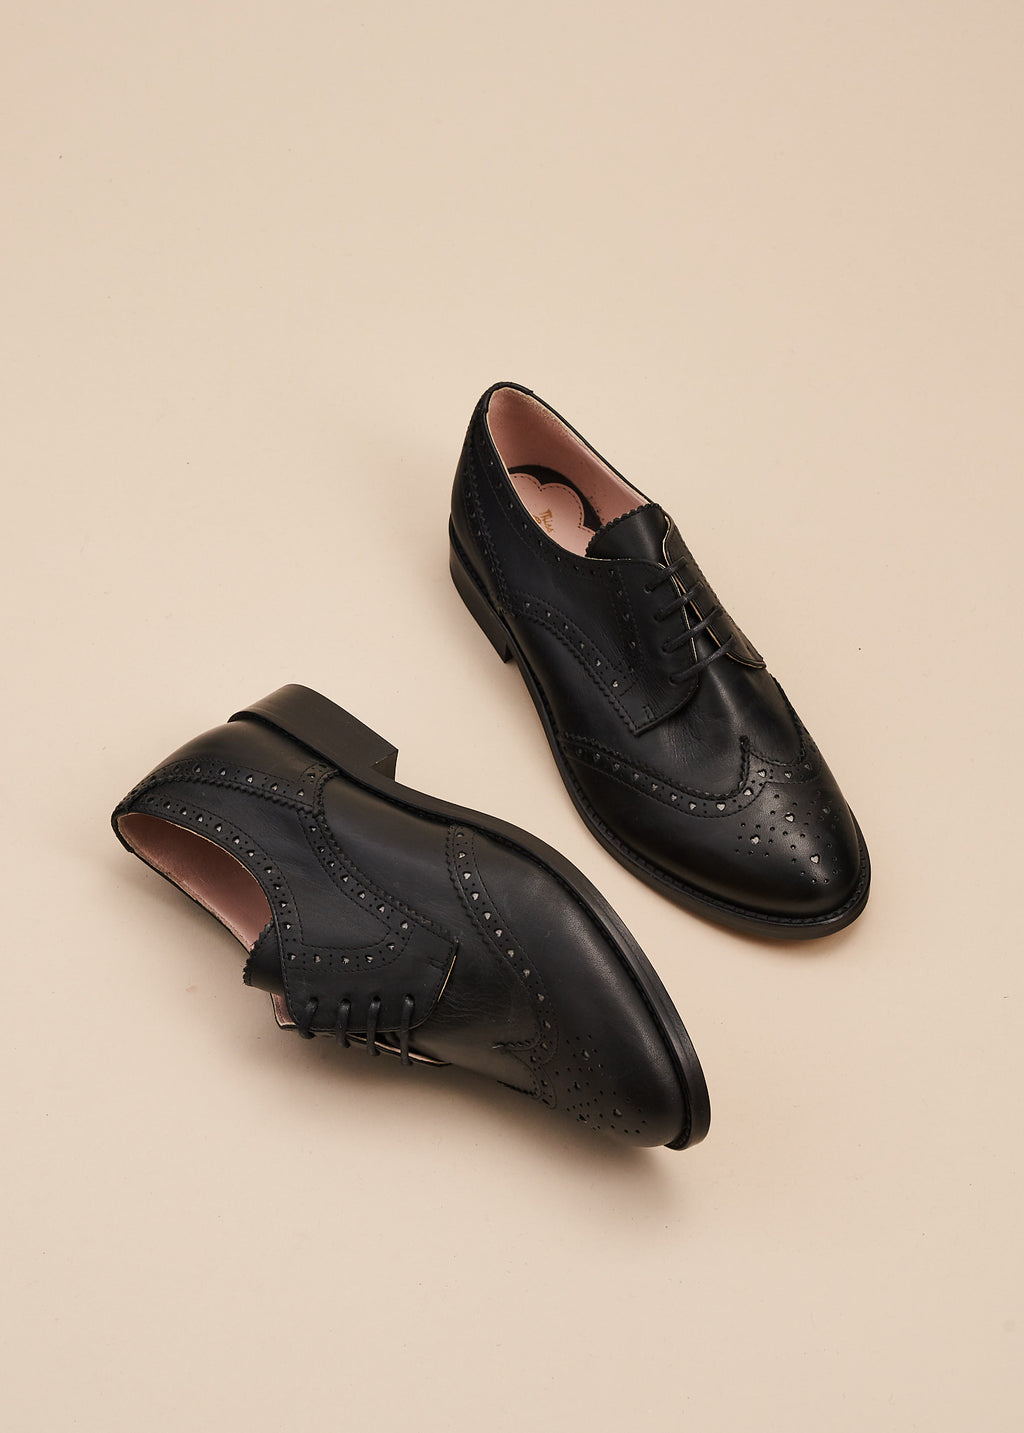 Audrey Black Lace-Up Brogue